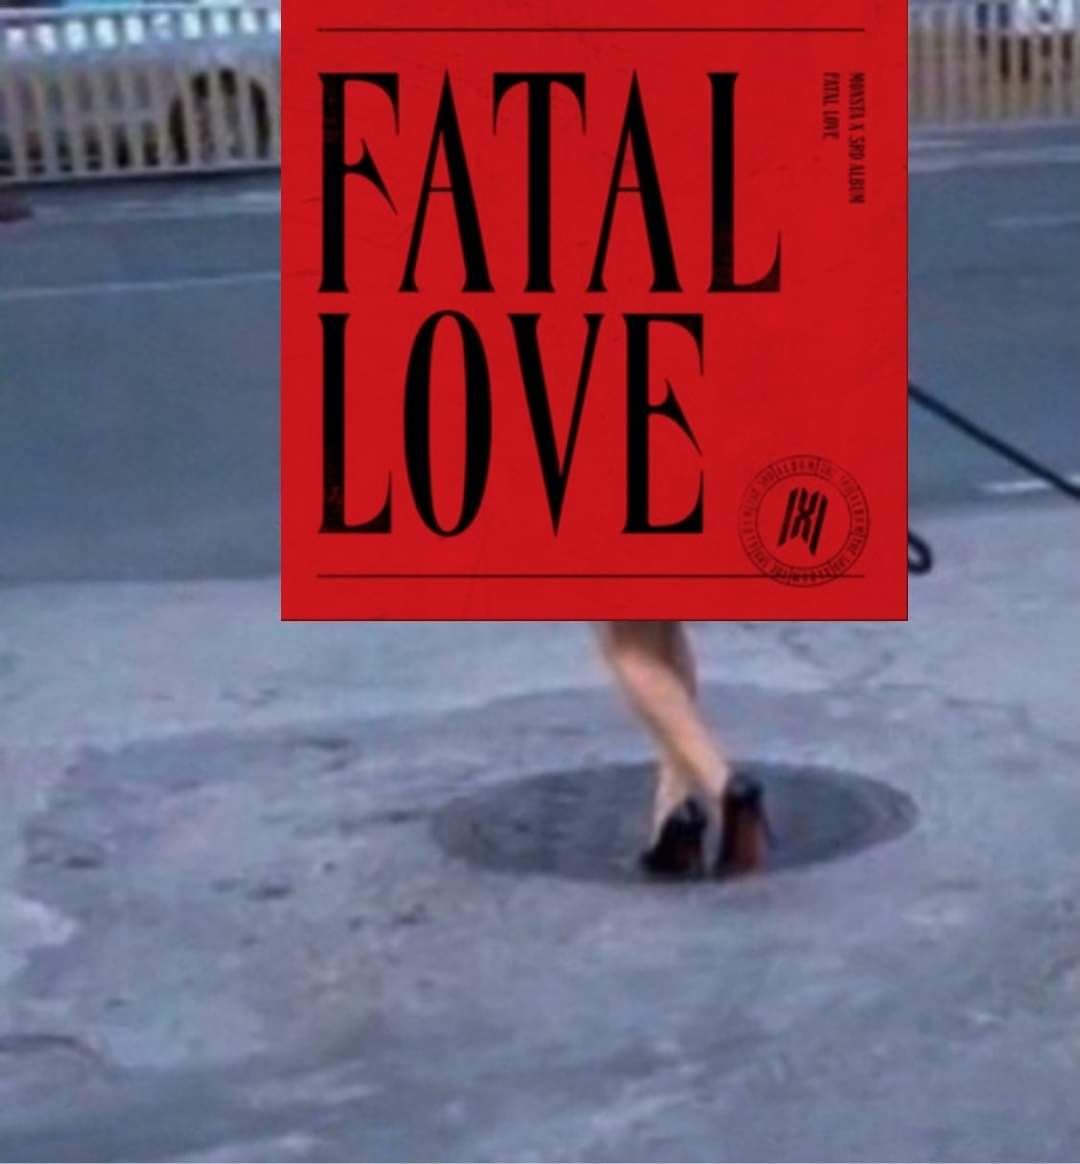 Replying to @jookingheon: fatal love supremacy